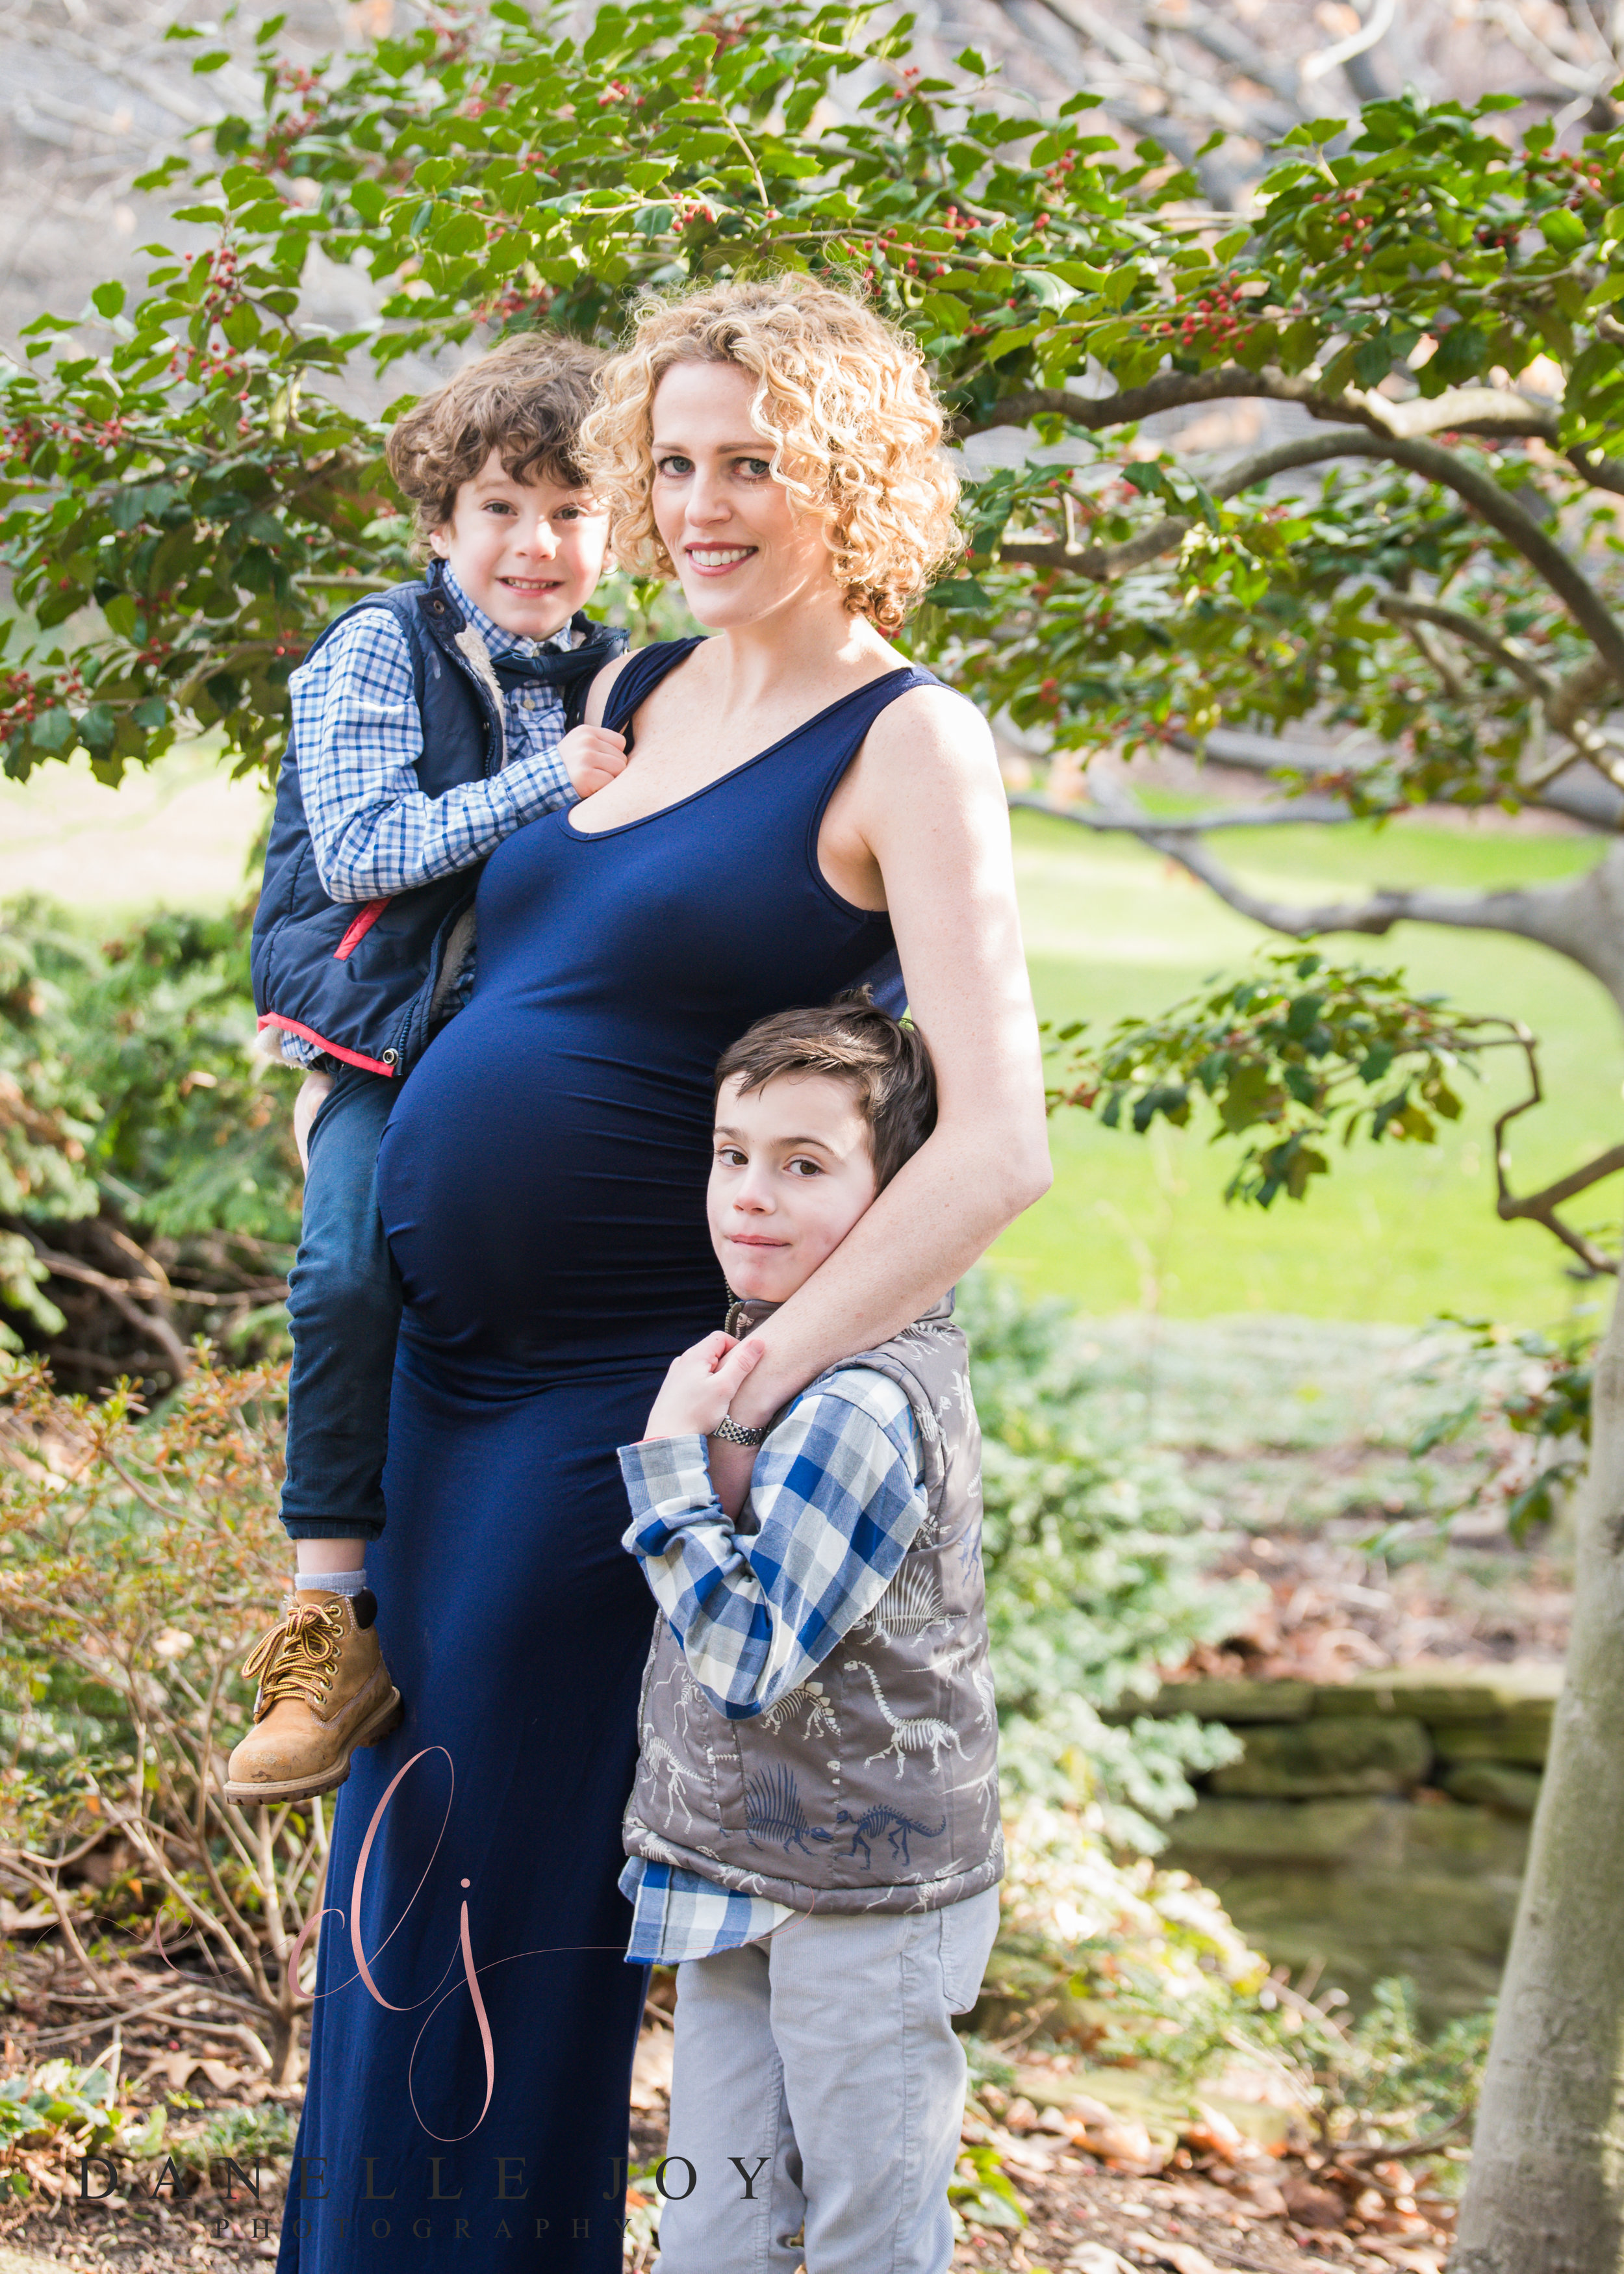 Maternity Session, Family Photography, Family Photographer